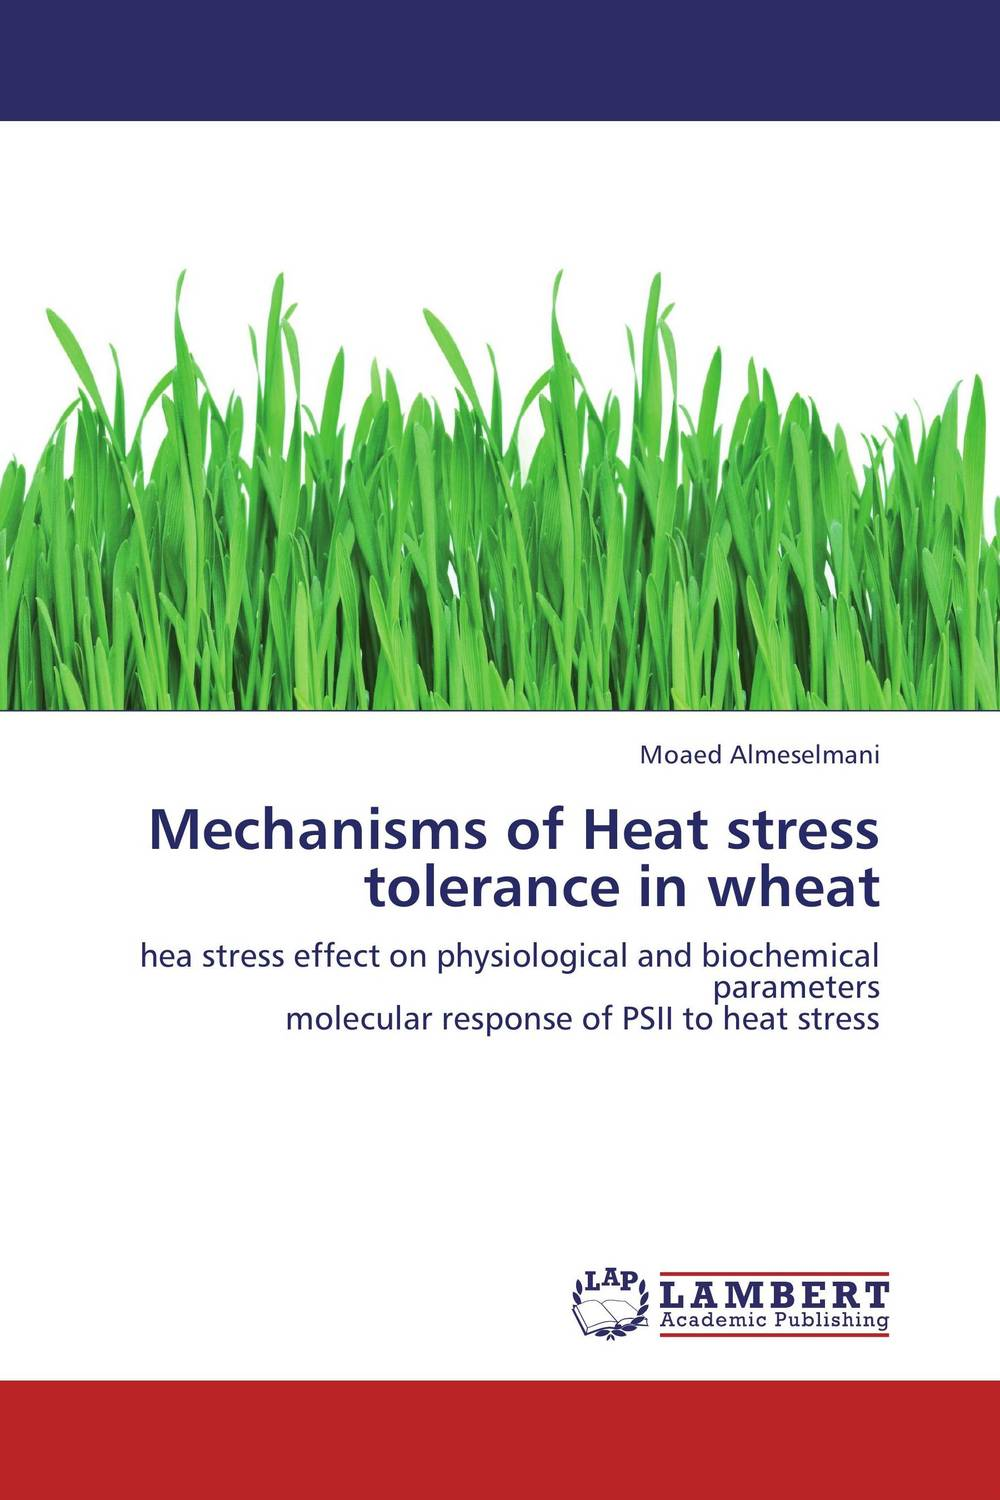 Mechanisms of Heat stress tolerance in wheat